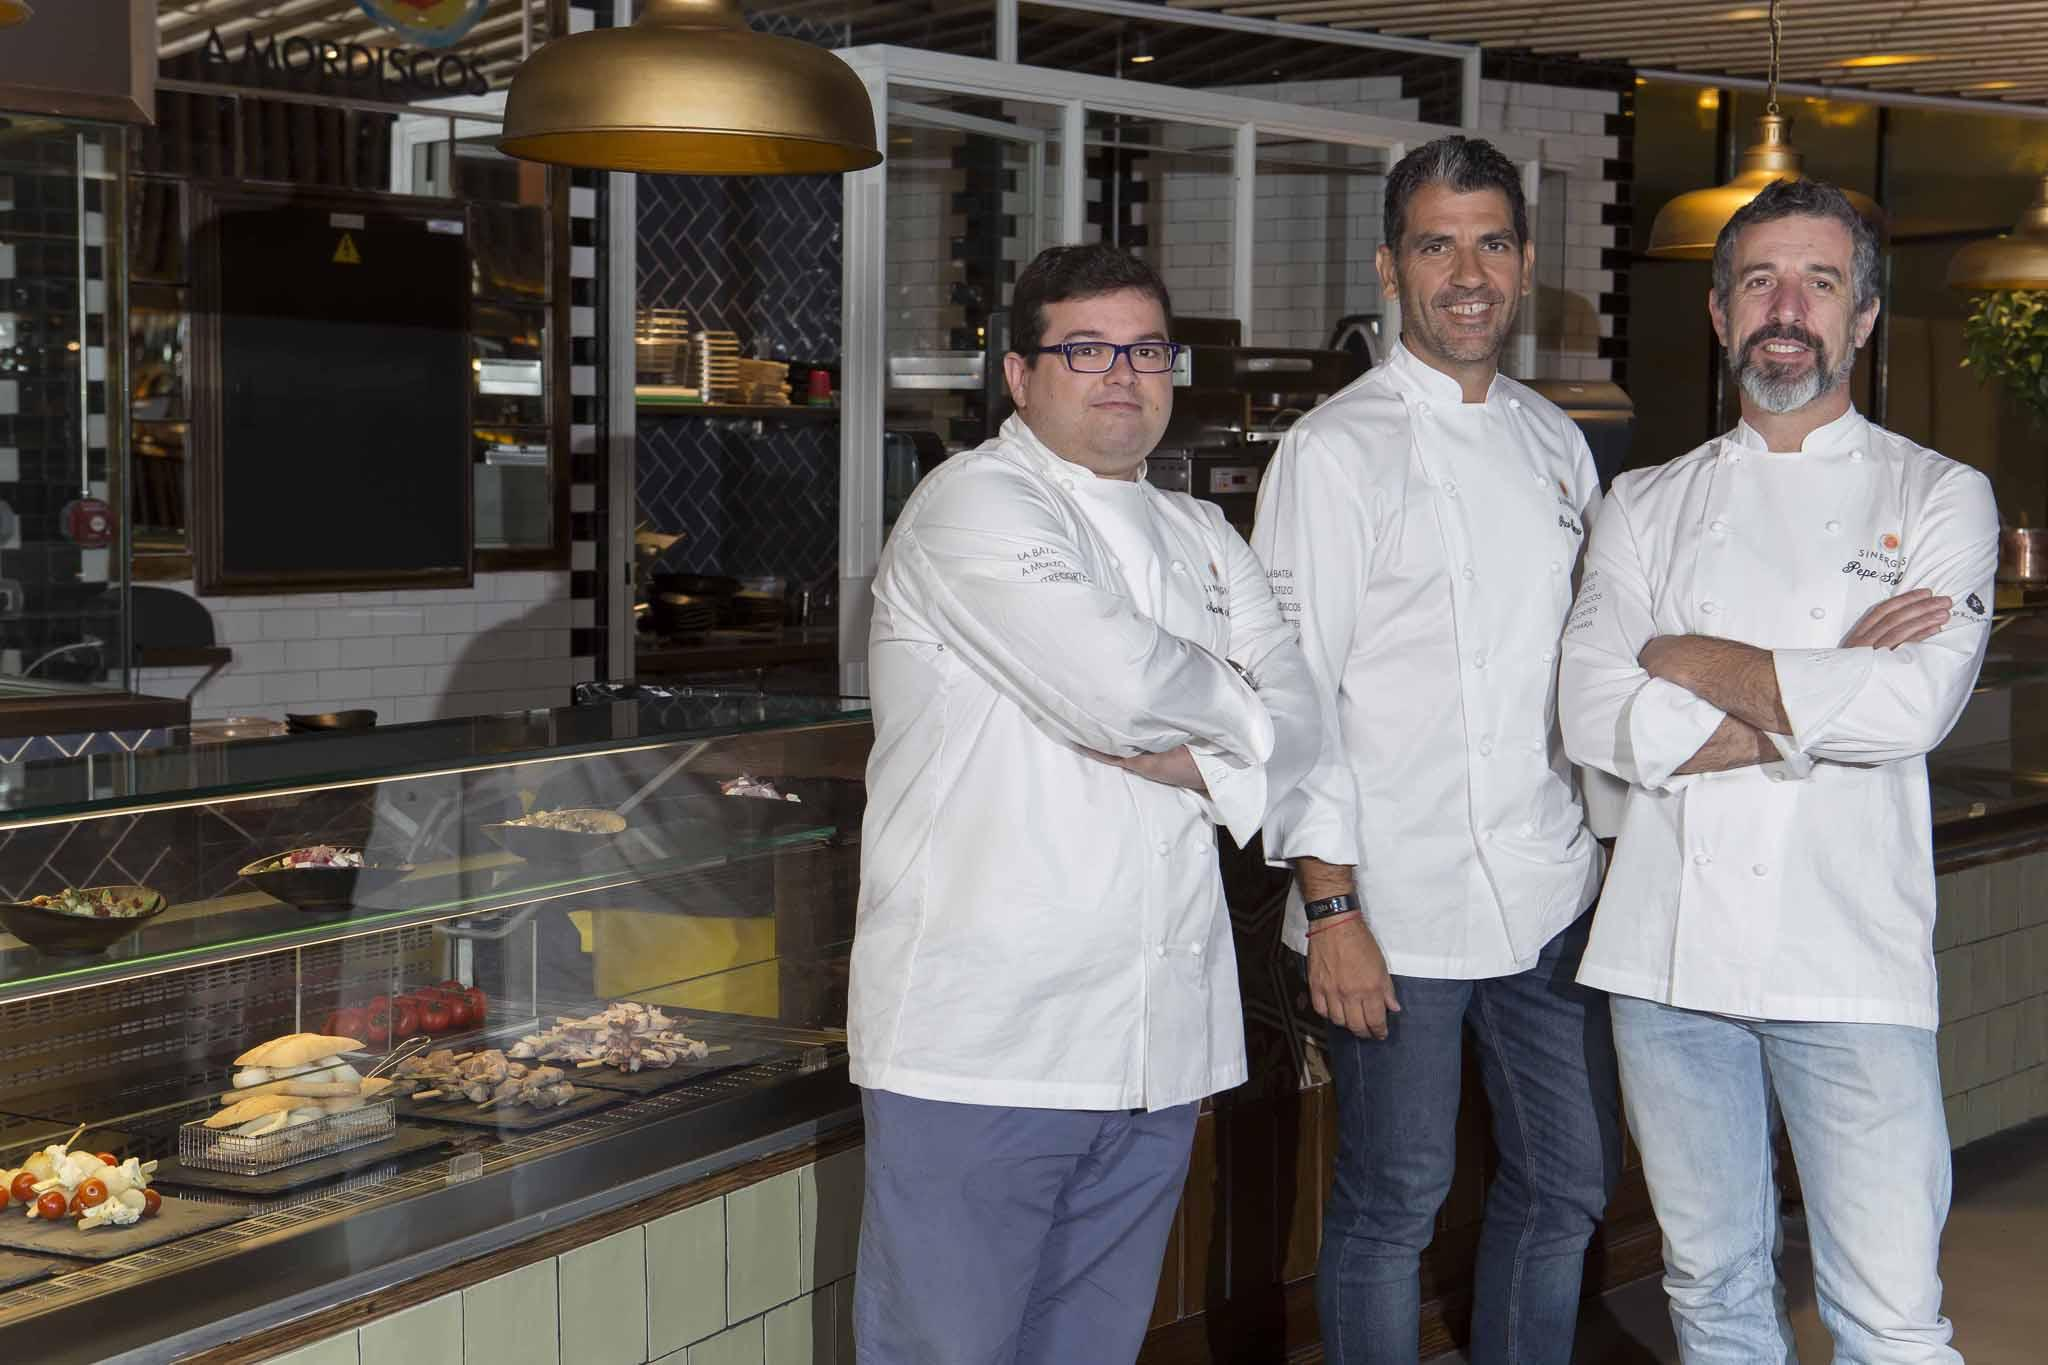 Michelin Star Cooks at Sinergias Platea Madrid: Paco Roncero, Marcos Morán and Pepe Solla